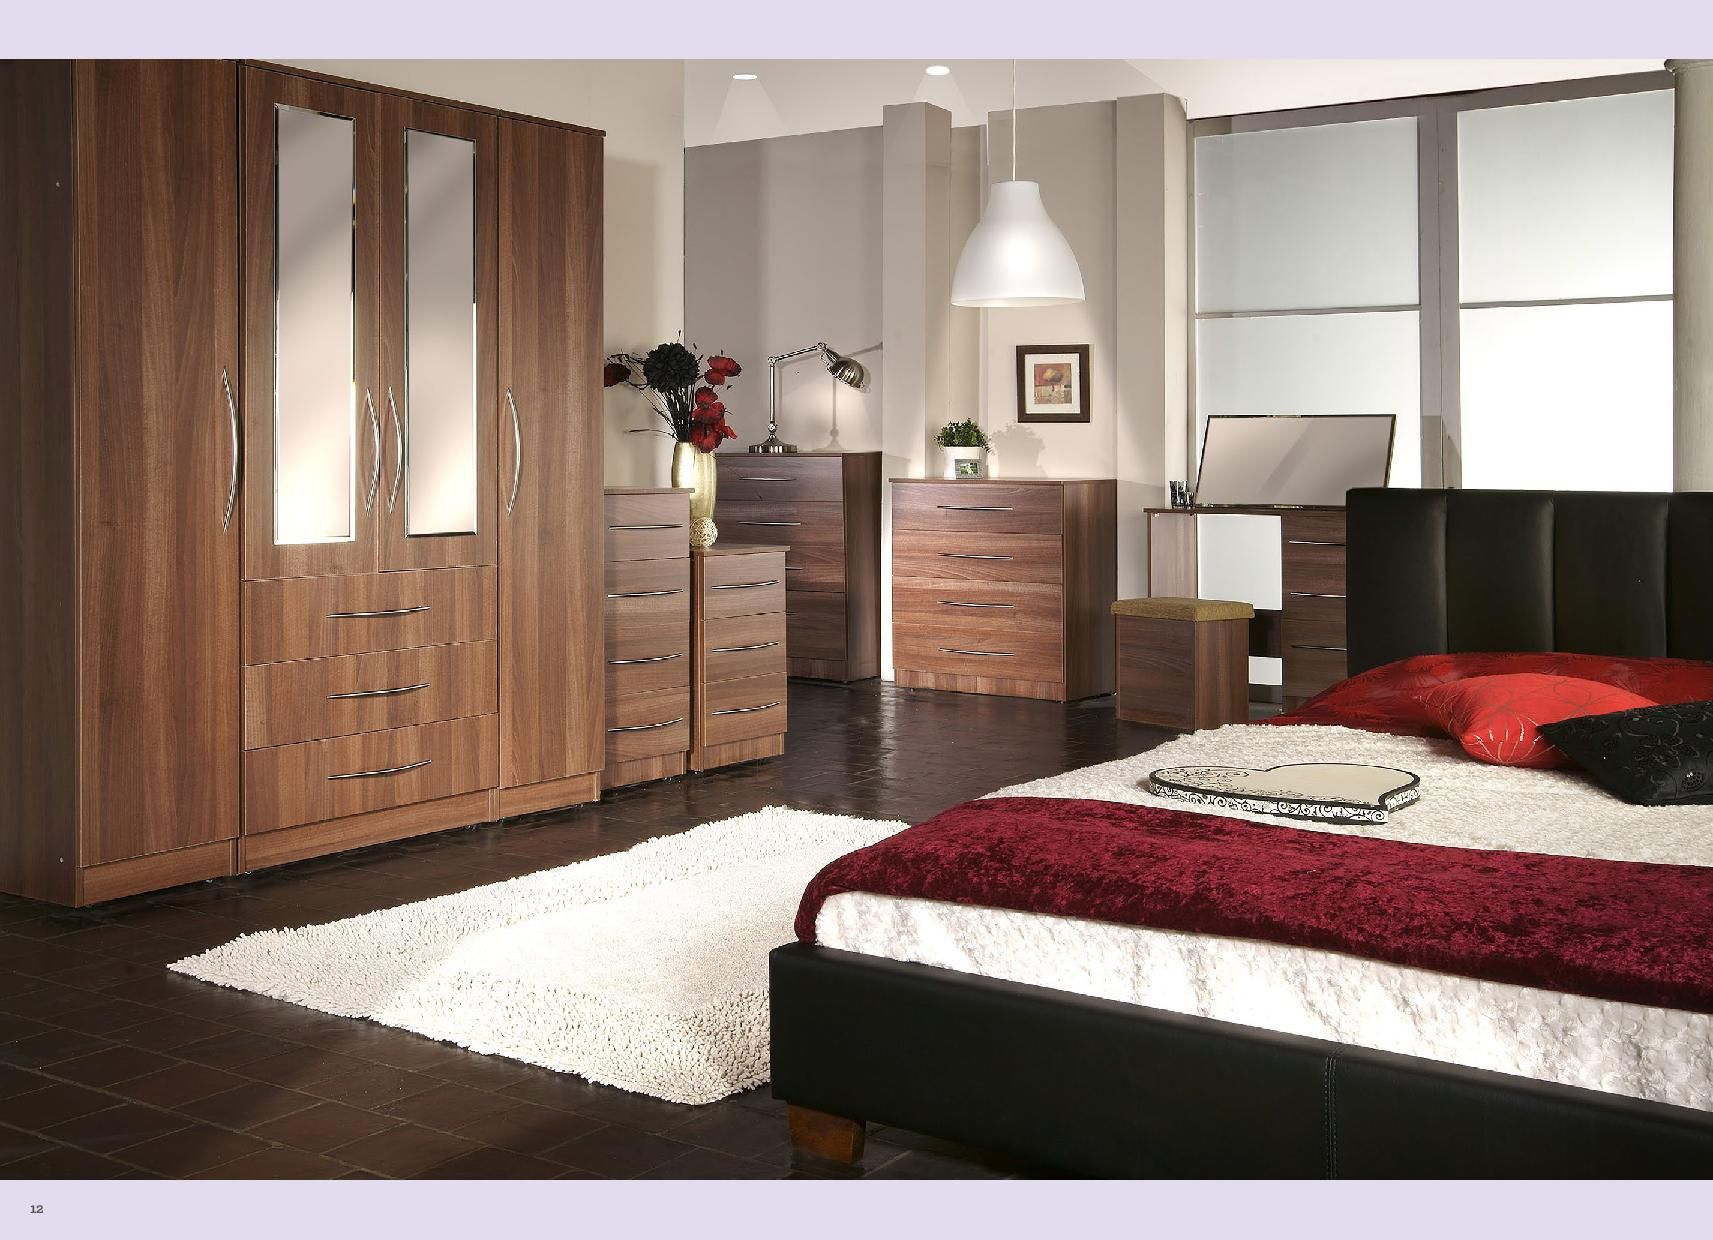 HMO Furniture How to make bed, Furniture, Ottoman